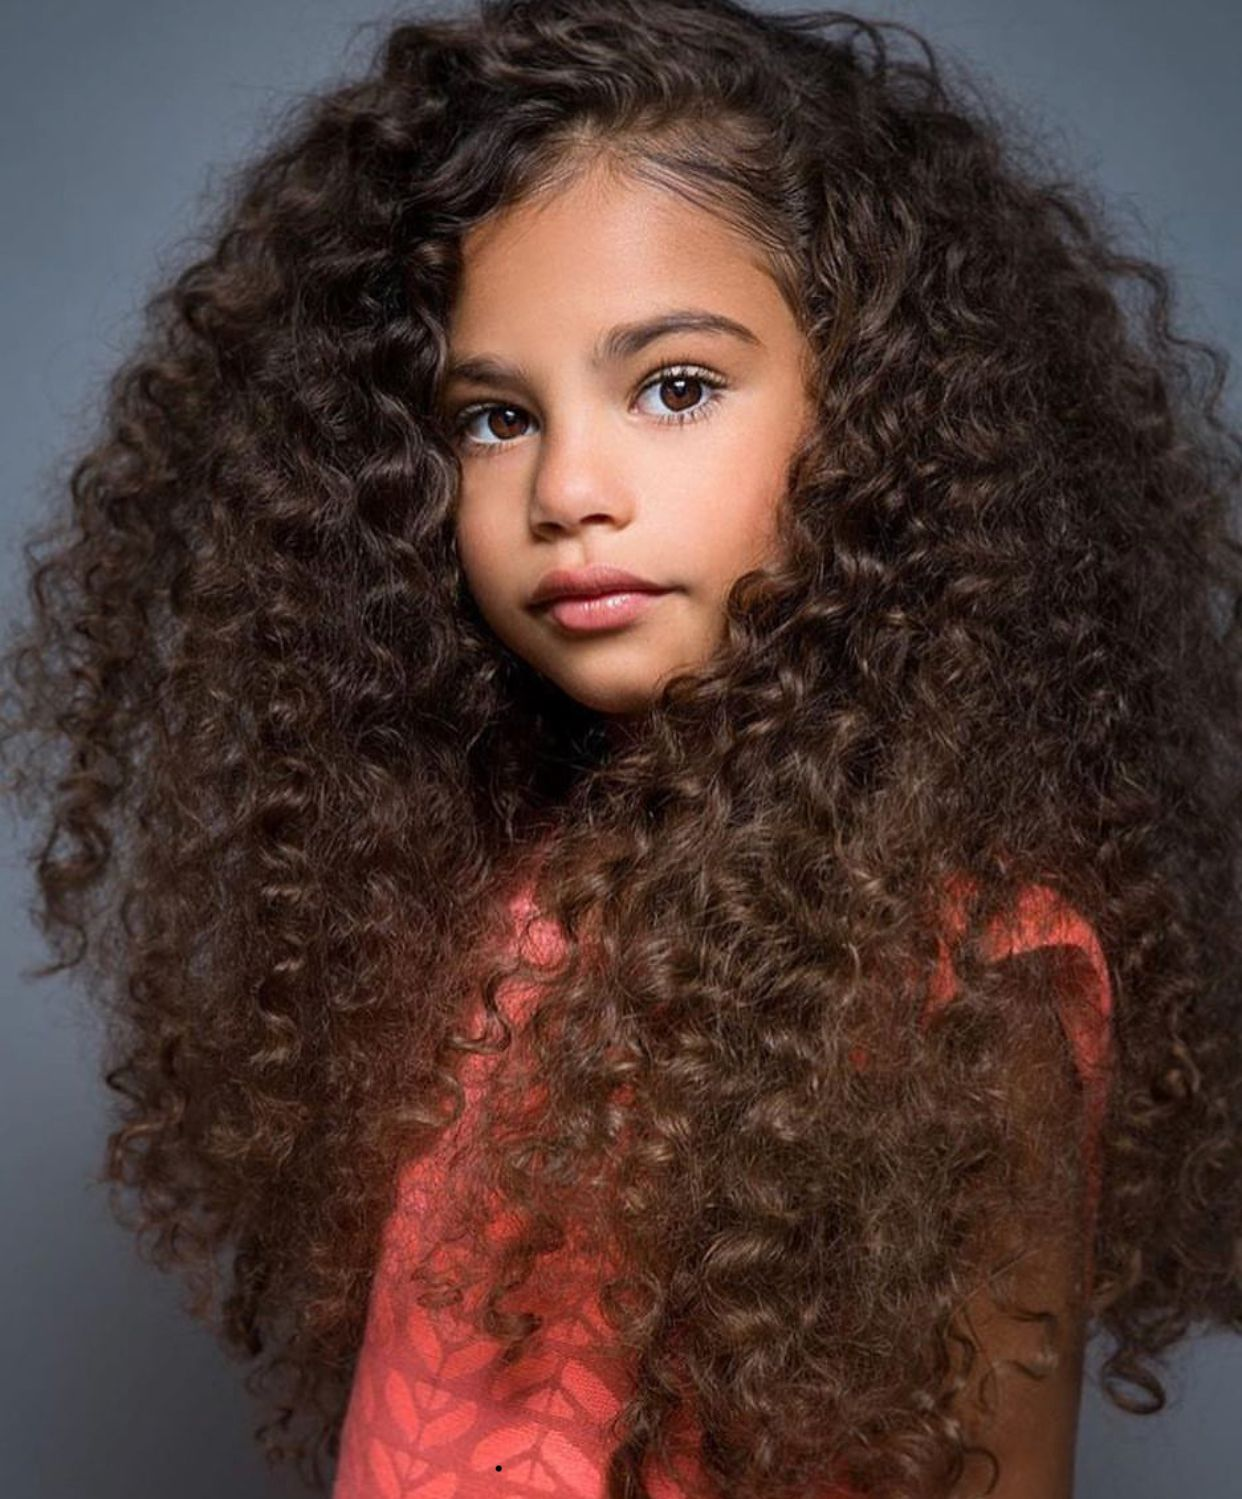 Mixed Pretty girl with curly hair